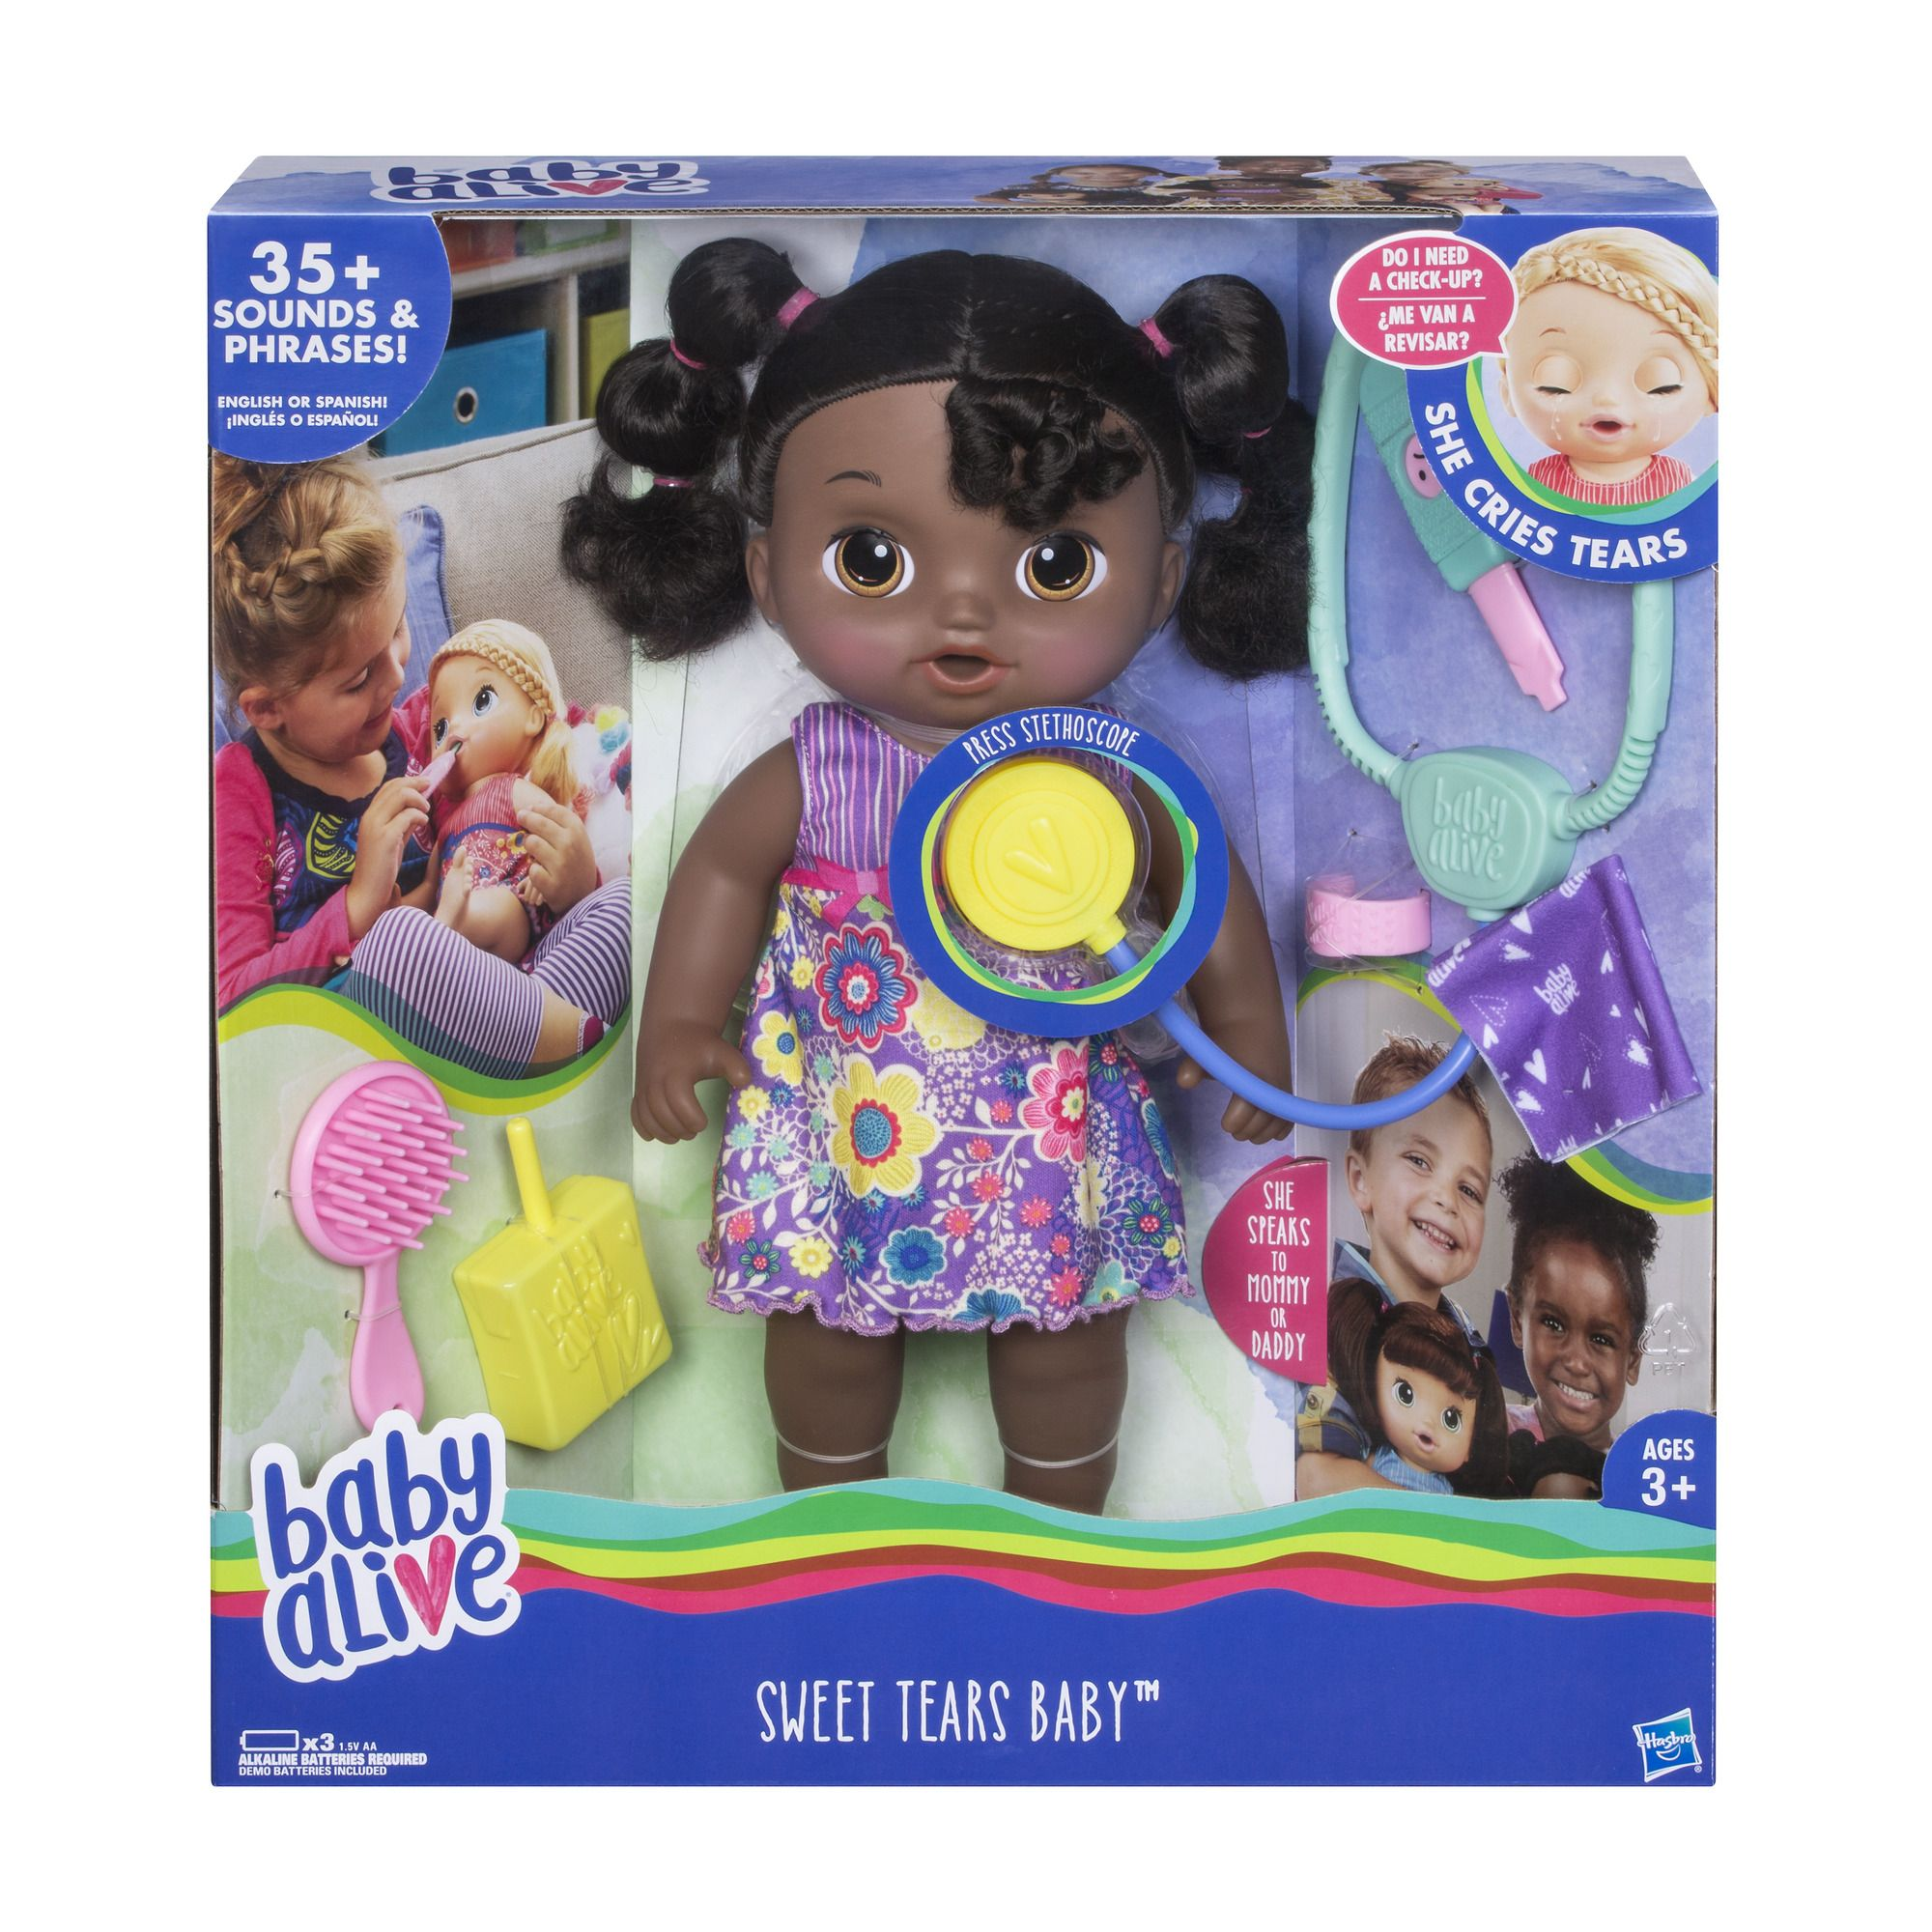 Baby Alive Sweet Tears Black Hair Baby Doll Drinks And Cries Tears With Doctor Visit Accessories Walmart Exclusive Walmart Com In 2020 Baby Alive Baby Dolls Sick Baby